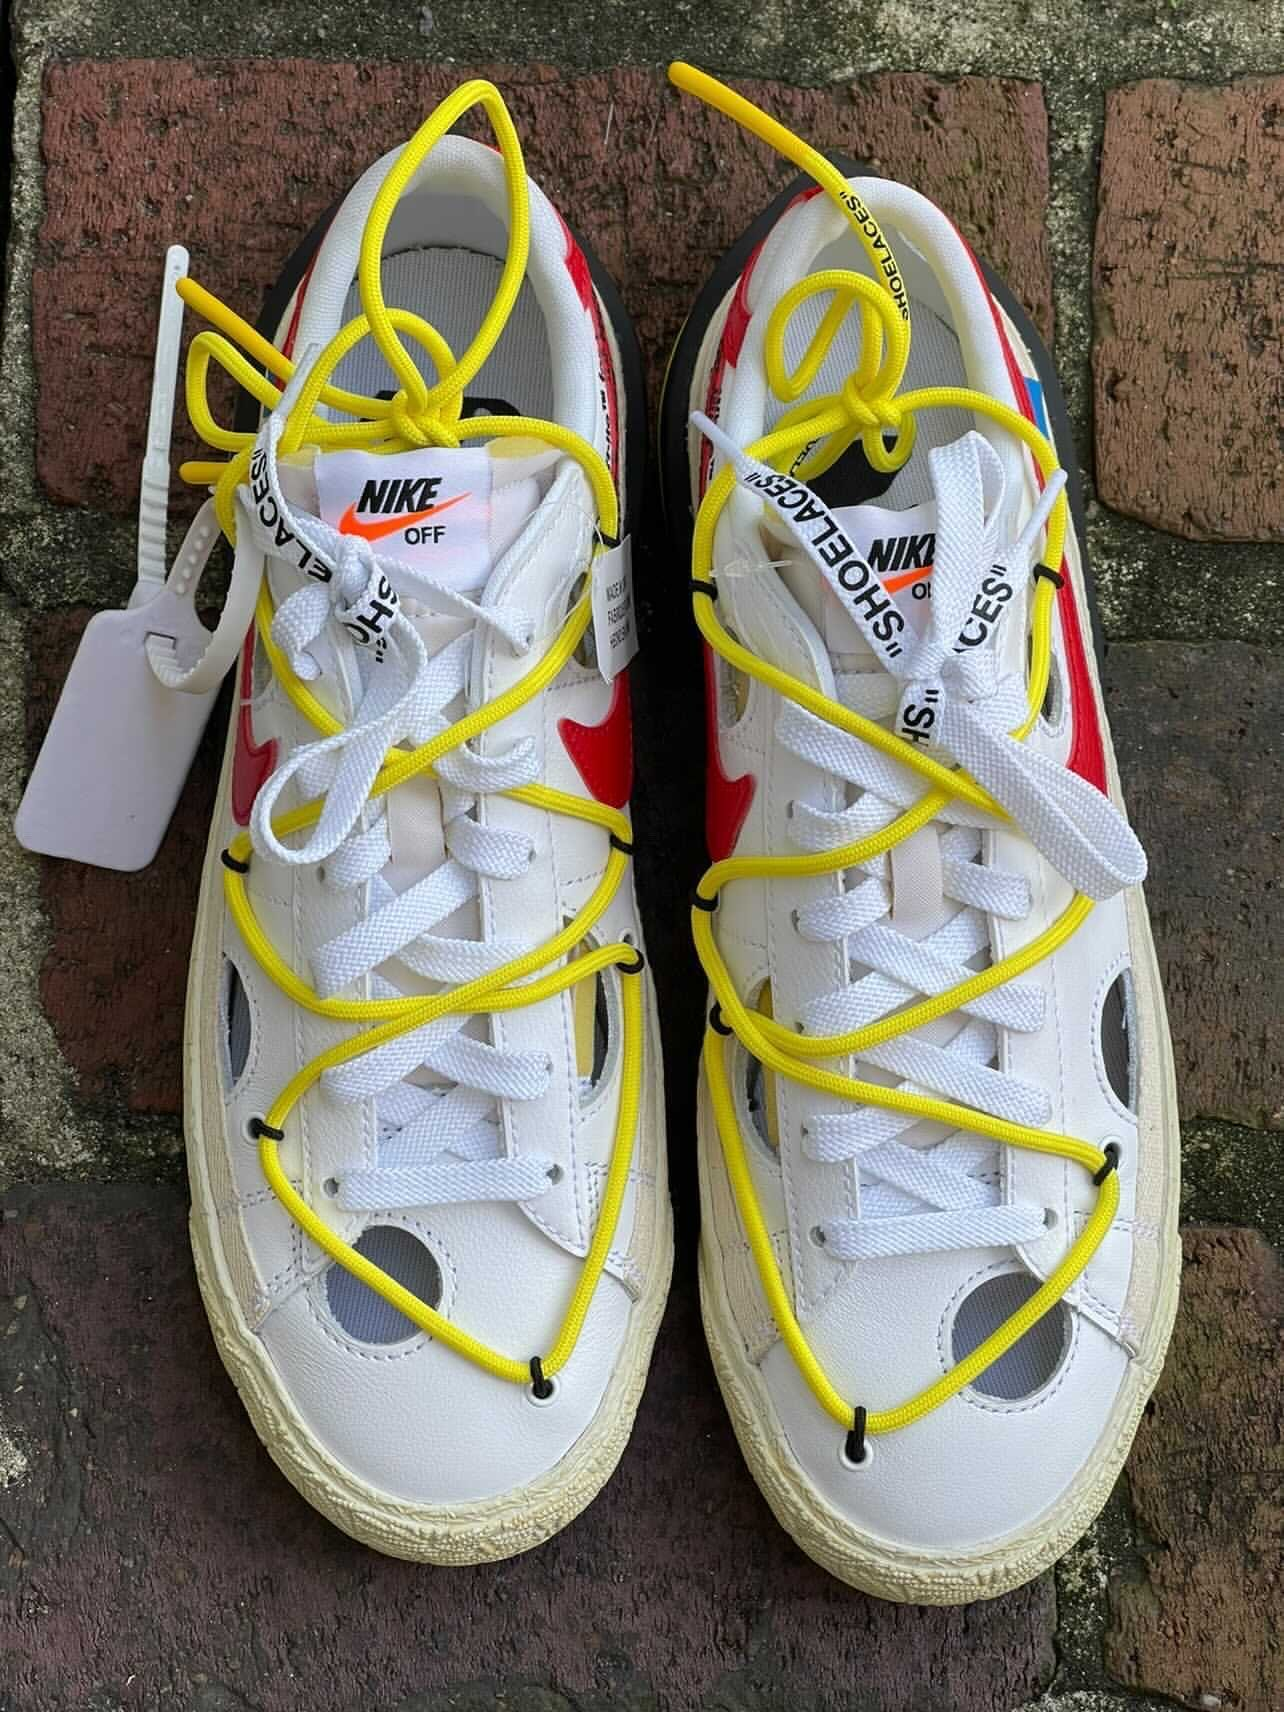 Off-White Nike Blazer Low White University Red DH7863-100 Release Details